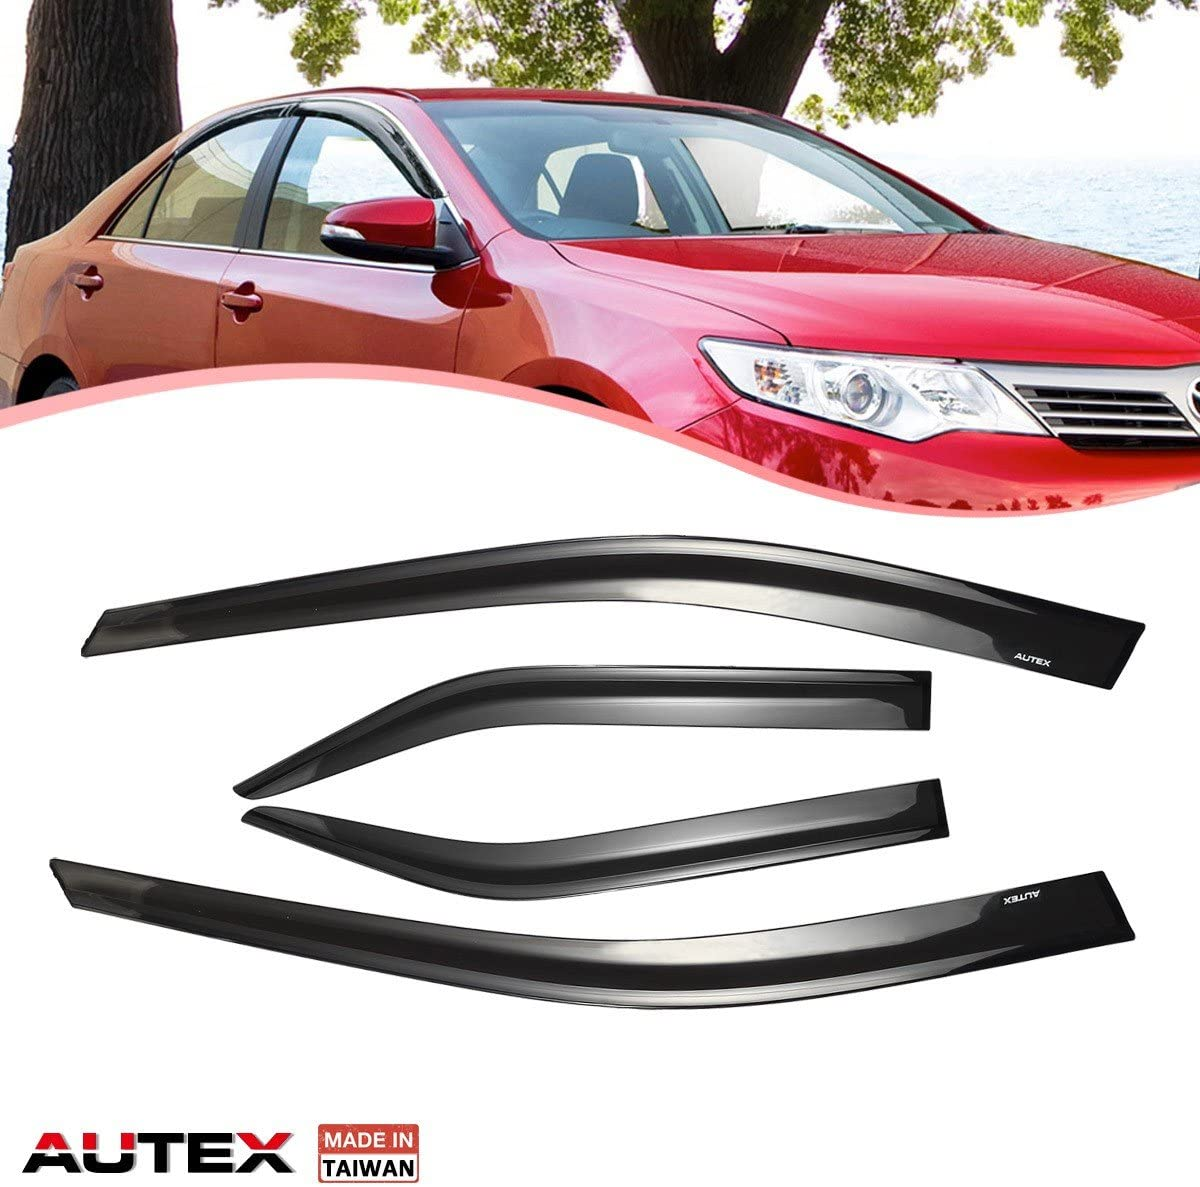 AUTEX Tape On Injection Window Deflectors Compatible with Camry 2012 2013 2014 Window Visor Rain Guards